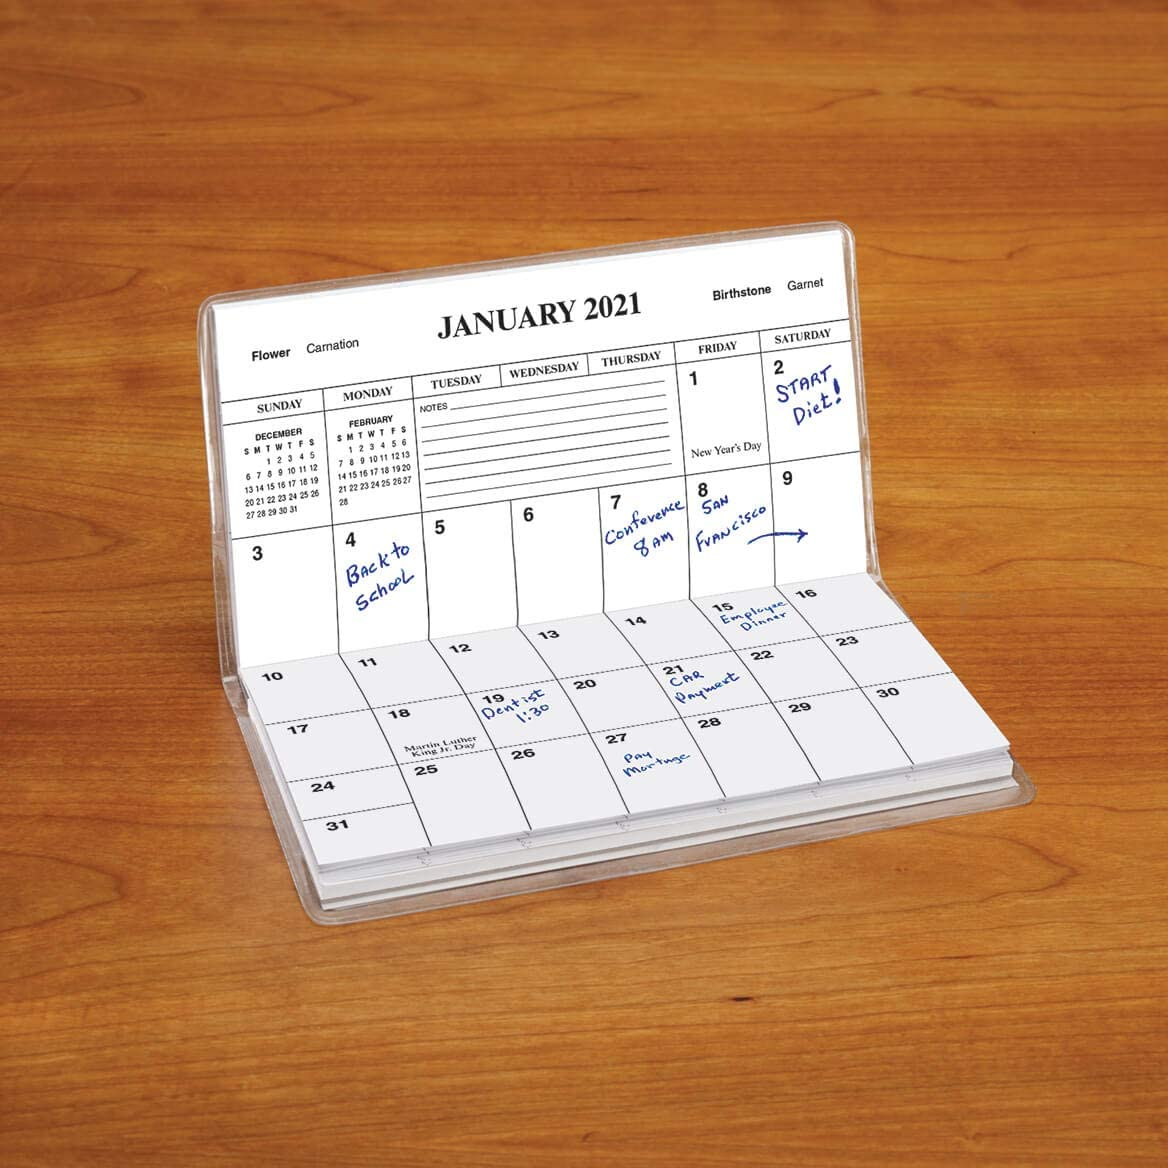 Pocket Sized Calendar Ideal for Purses 6 /¾ inches x 3 5//8 inches or Backpacks 2 Year Planner with God Briefcases